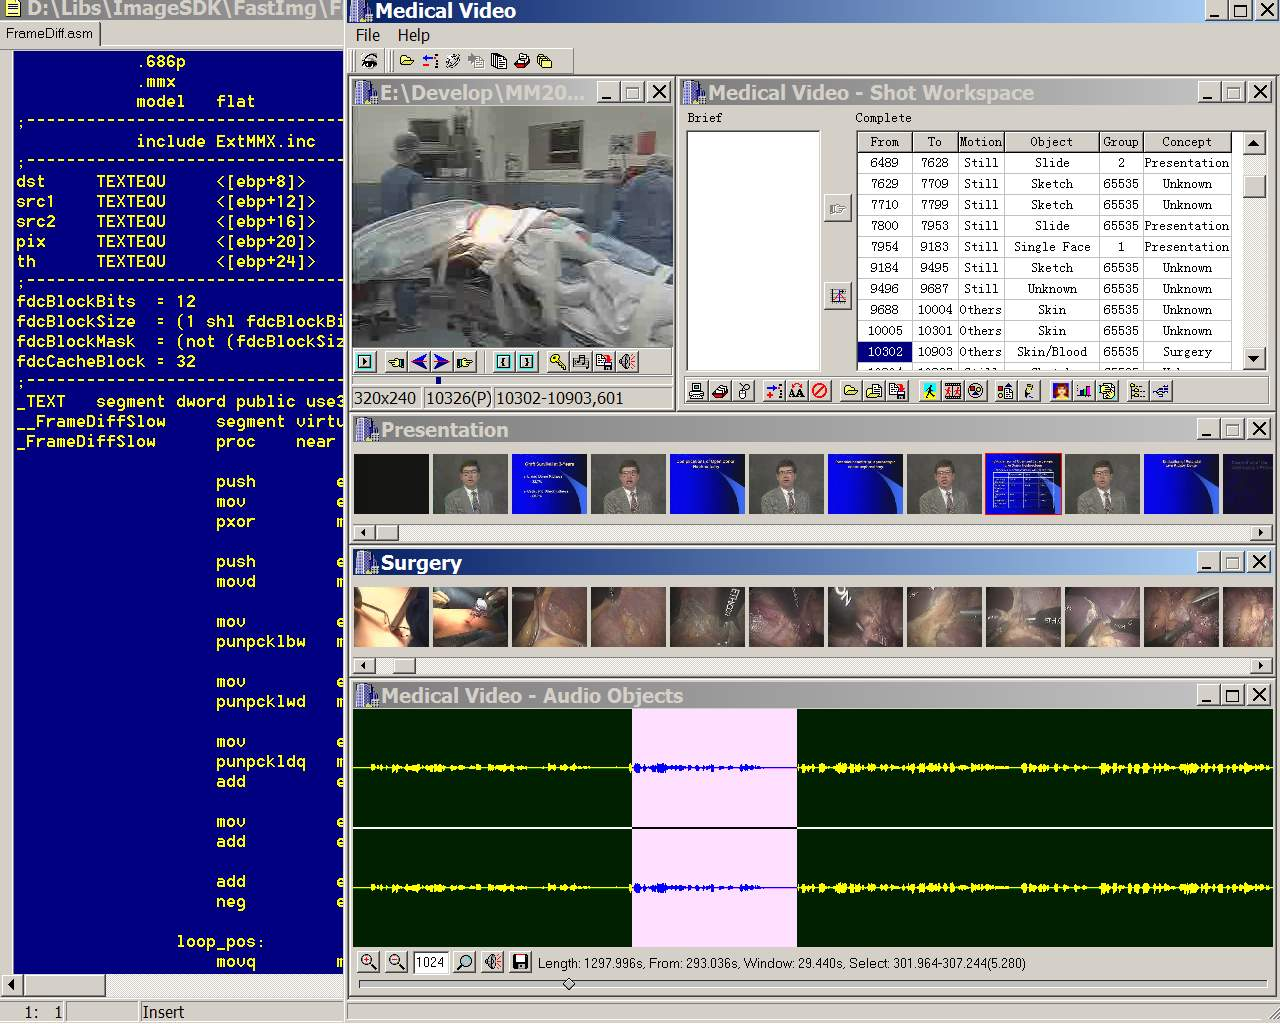 Semantic Video Classification, Indexing and Retrieval